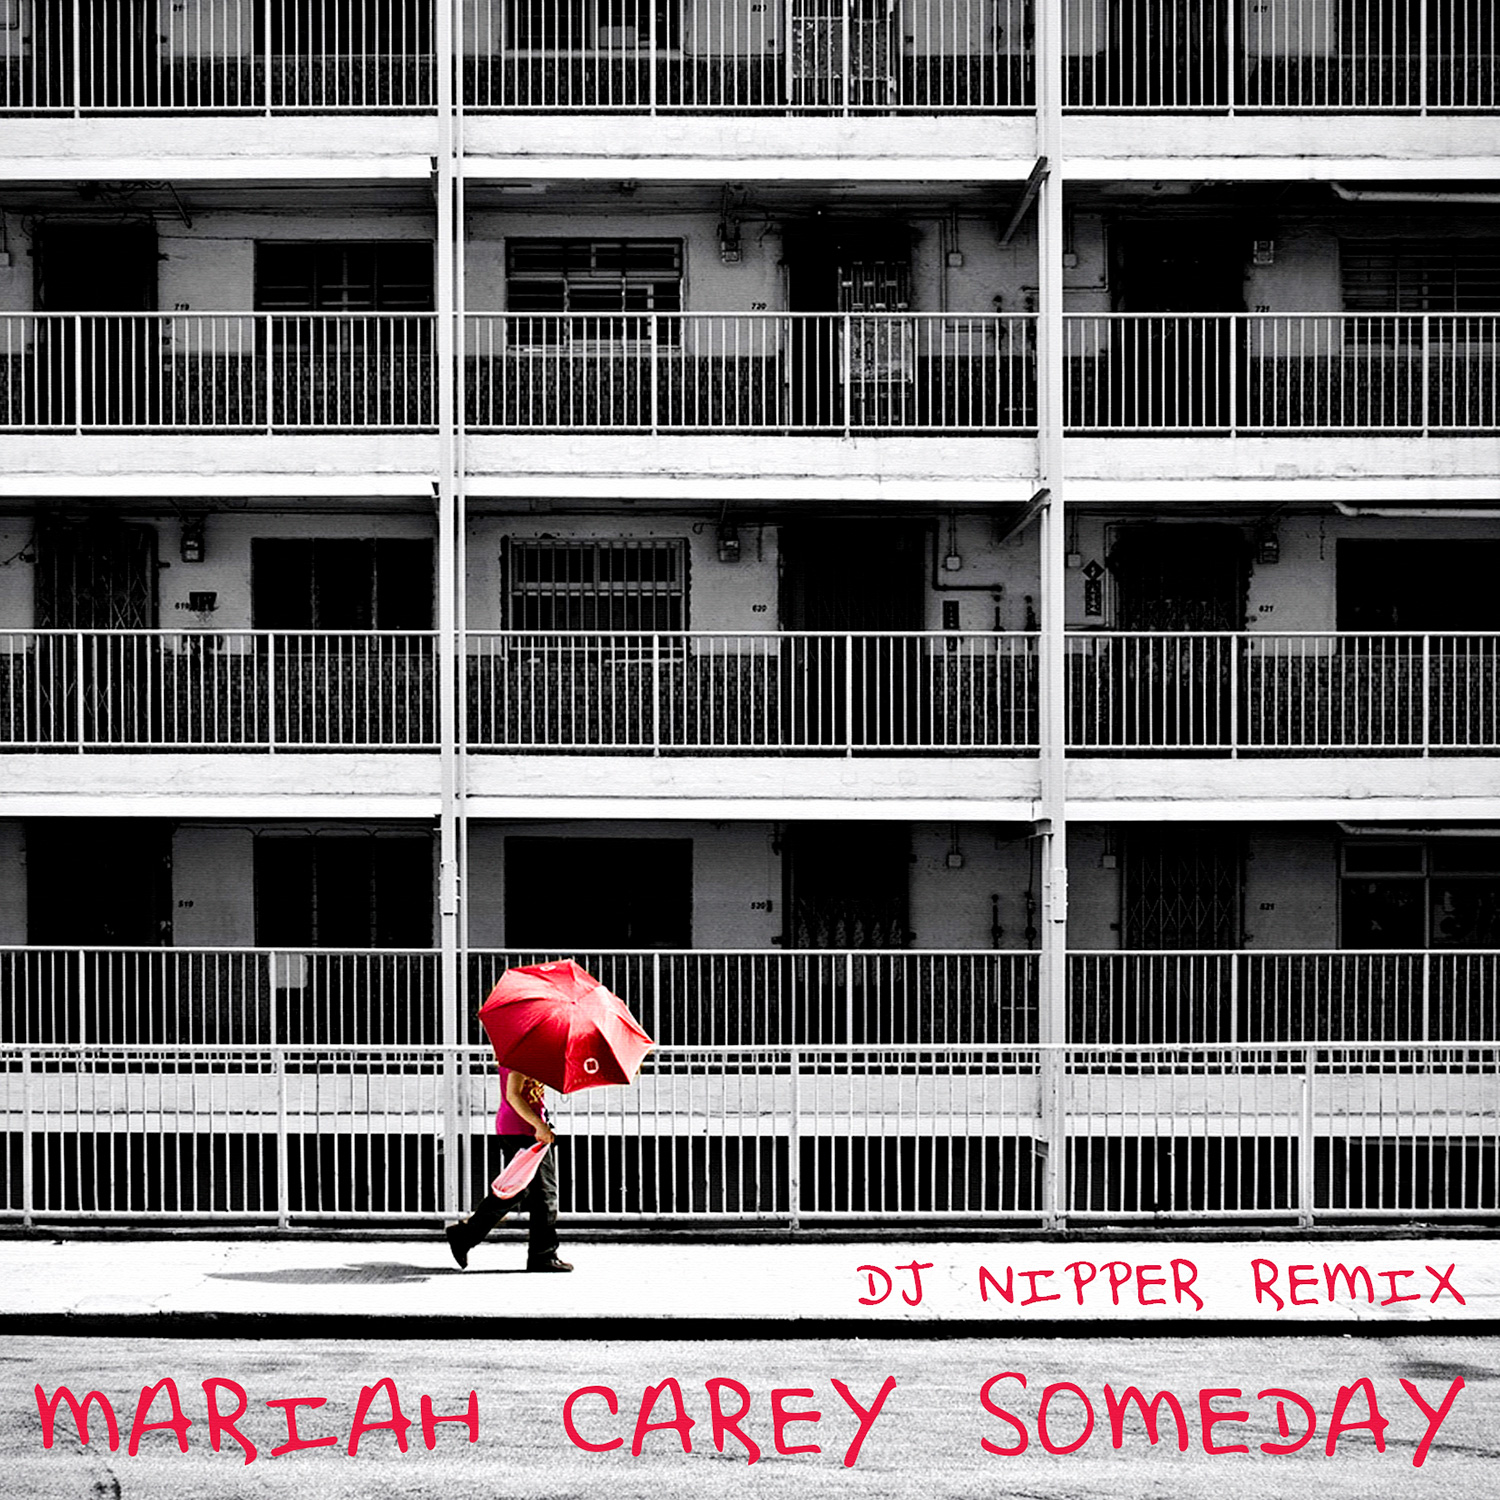 mariah_carey_someday_nipperremix